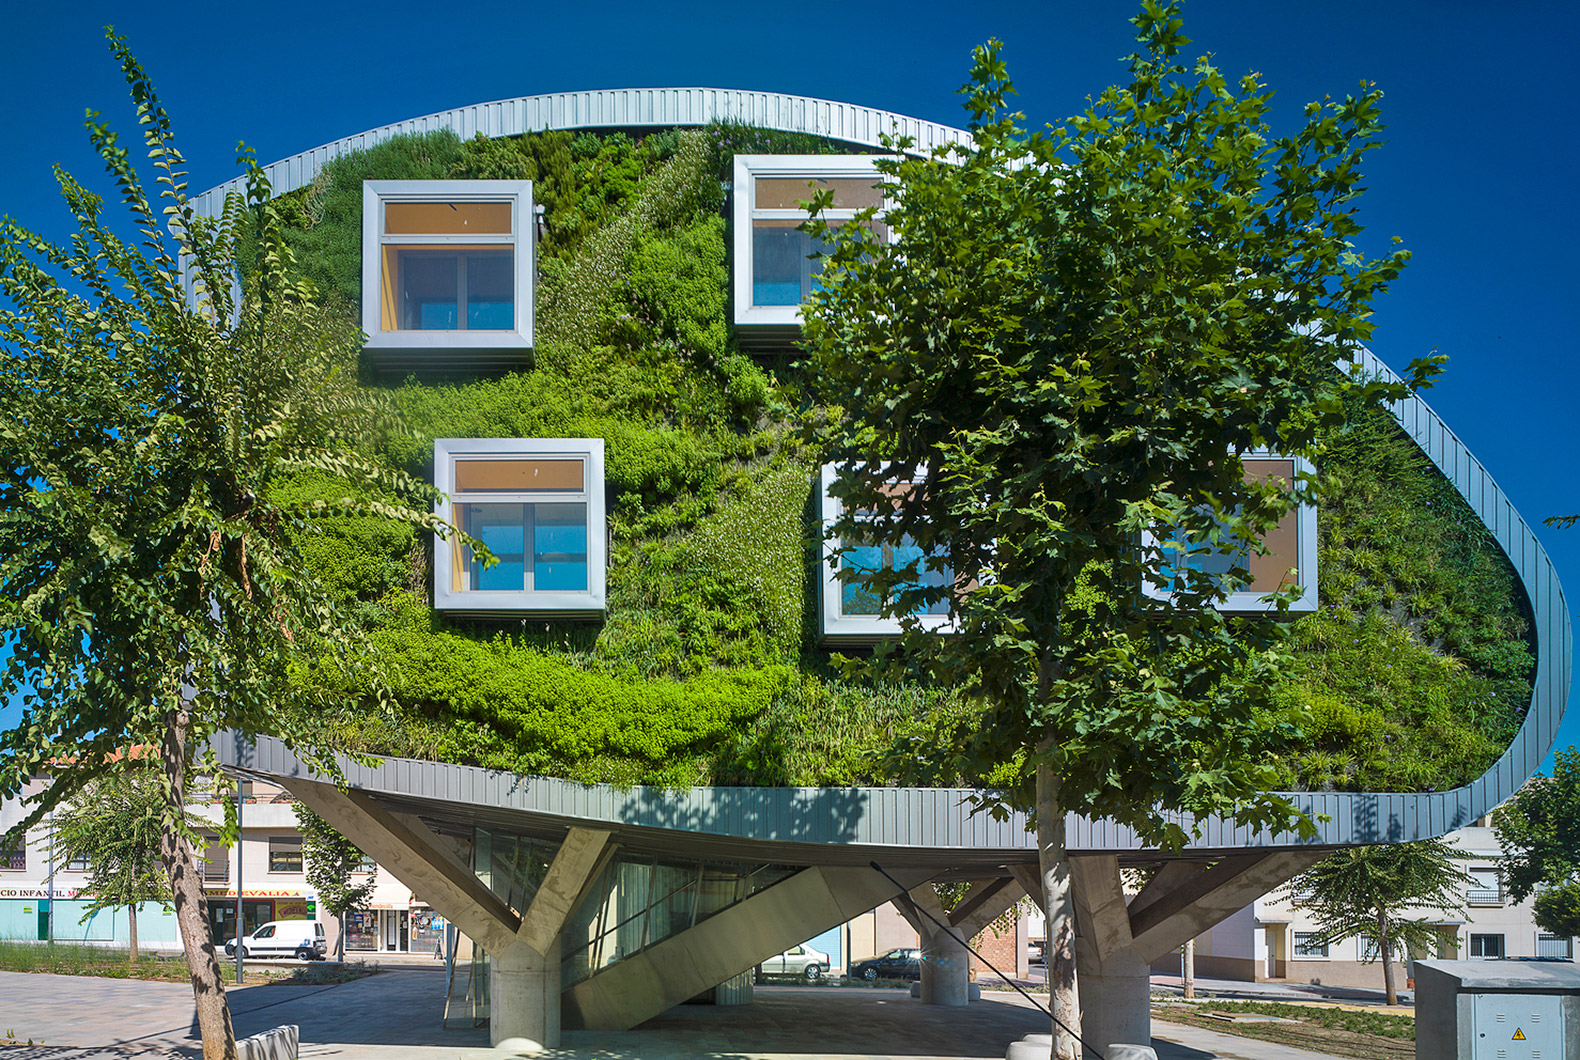 Net Zero Building Inhabitat Green Design Innovation